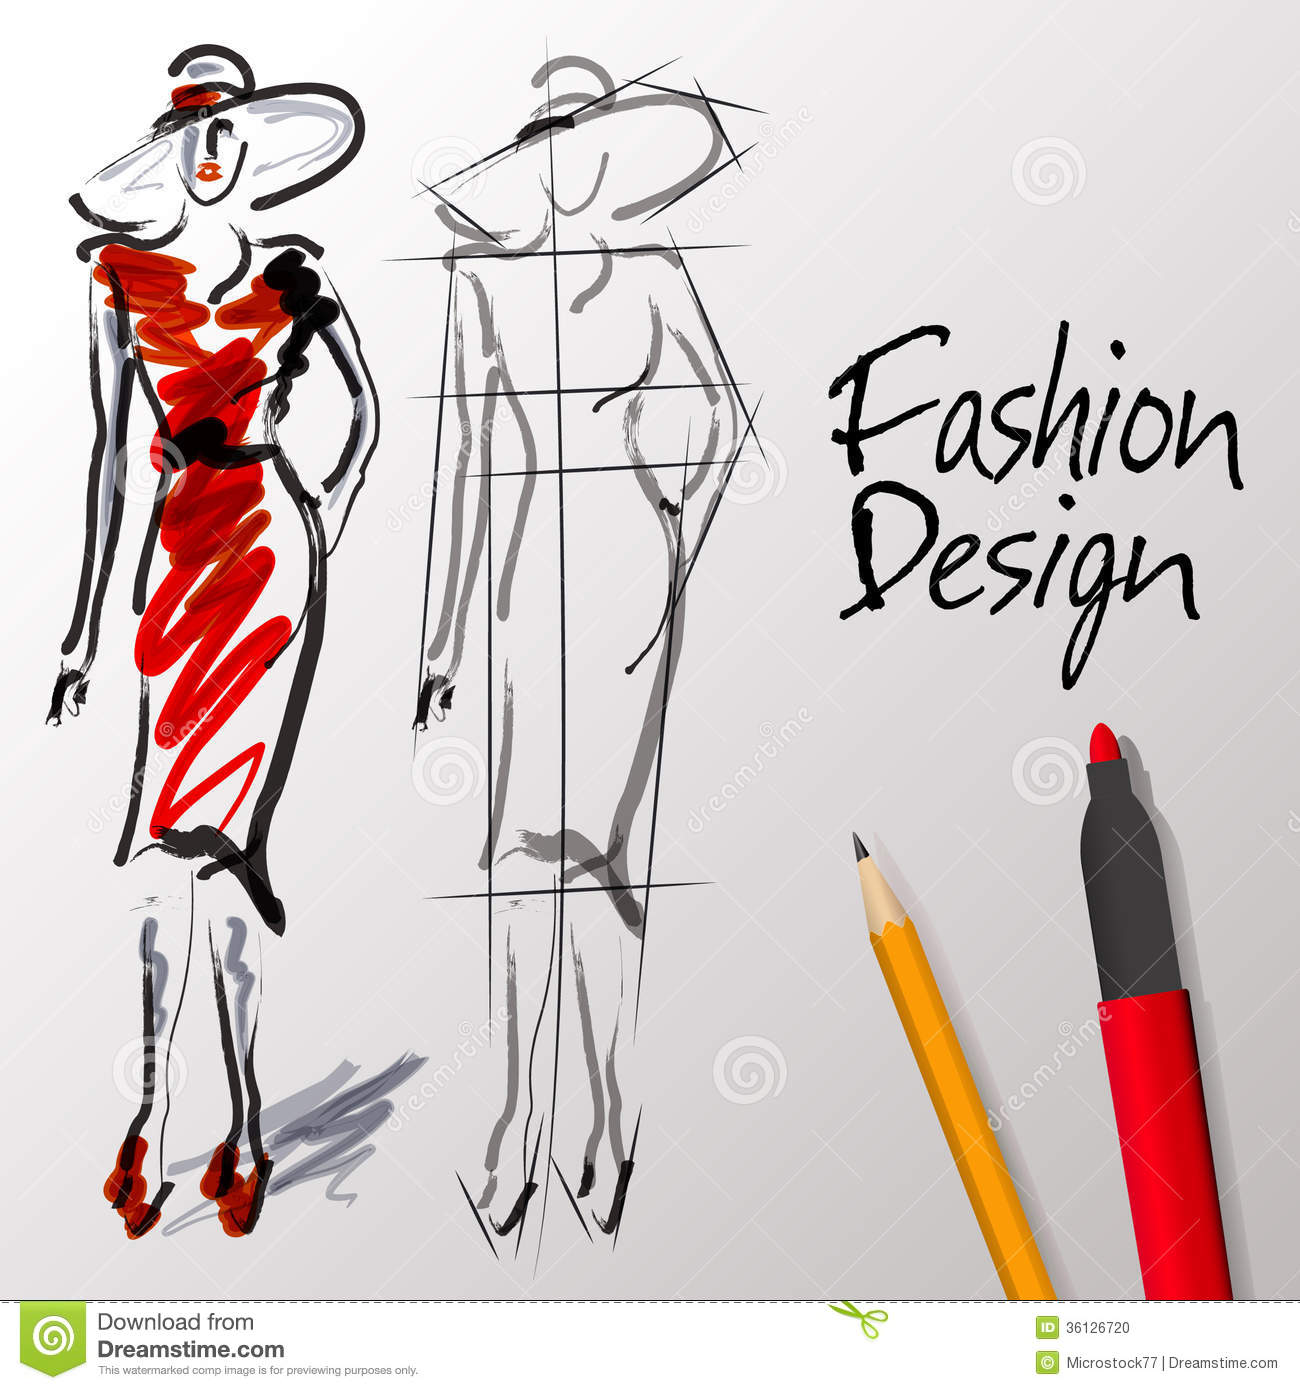 Fashion designing clipart.